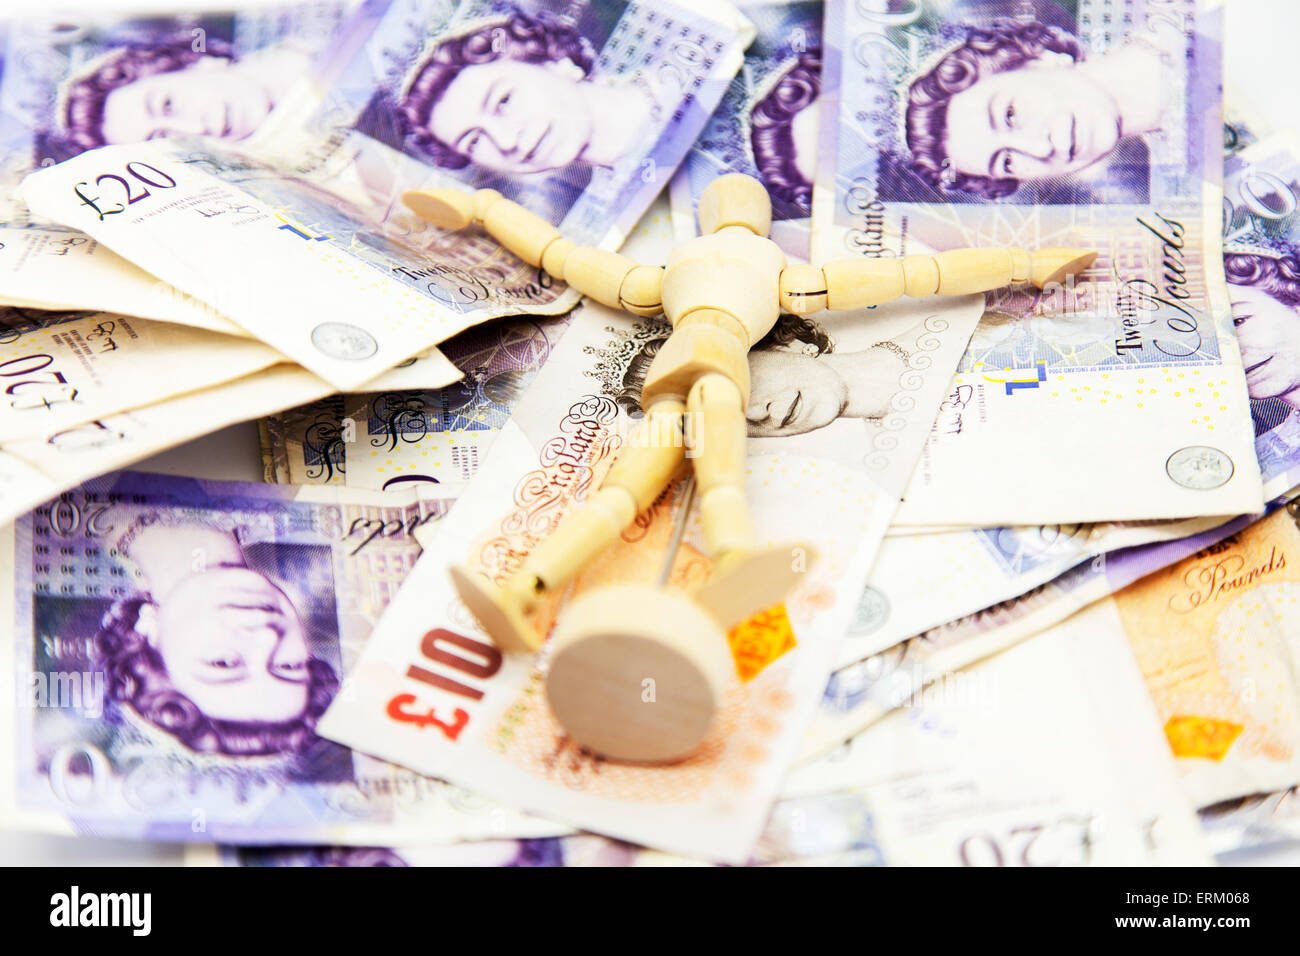 Wooden man rolling in money rich wealthy millionaire wealth wealthy millionaires cash pounds notes pound UK british - Stock Image